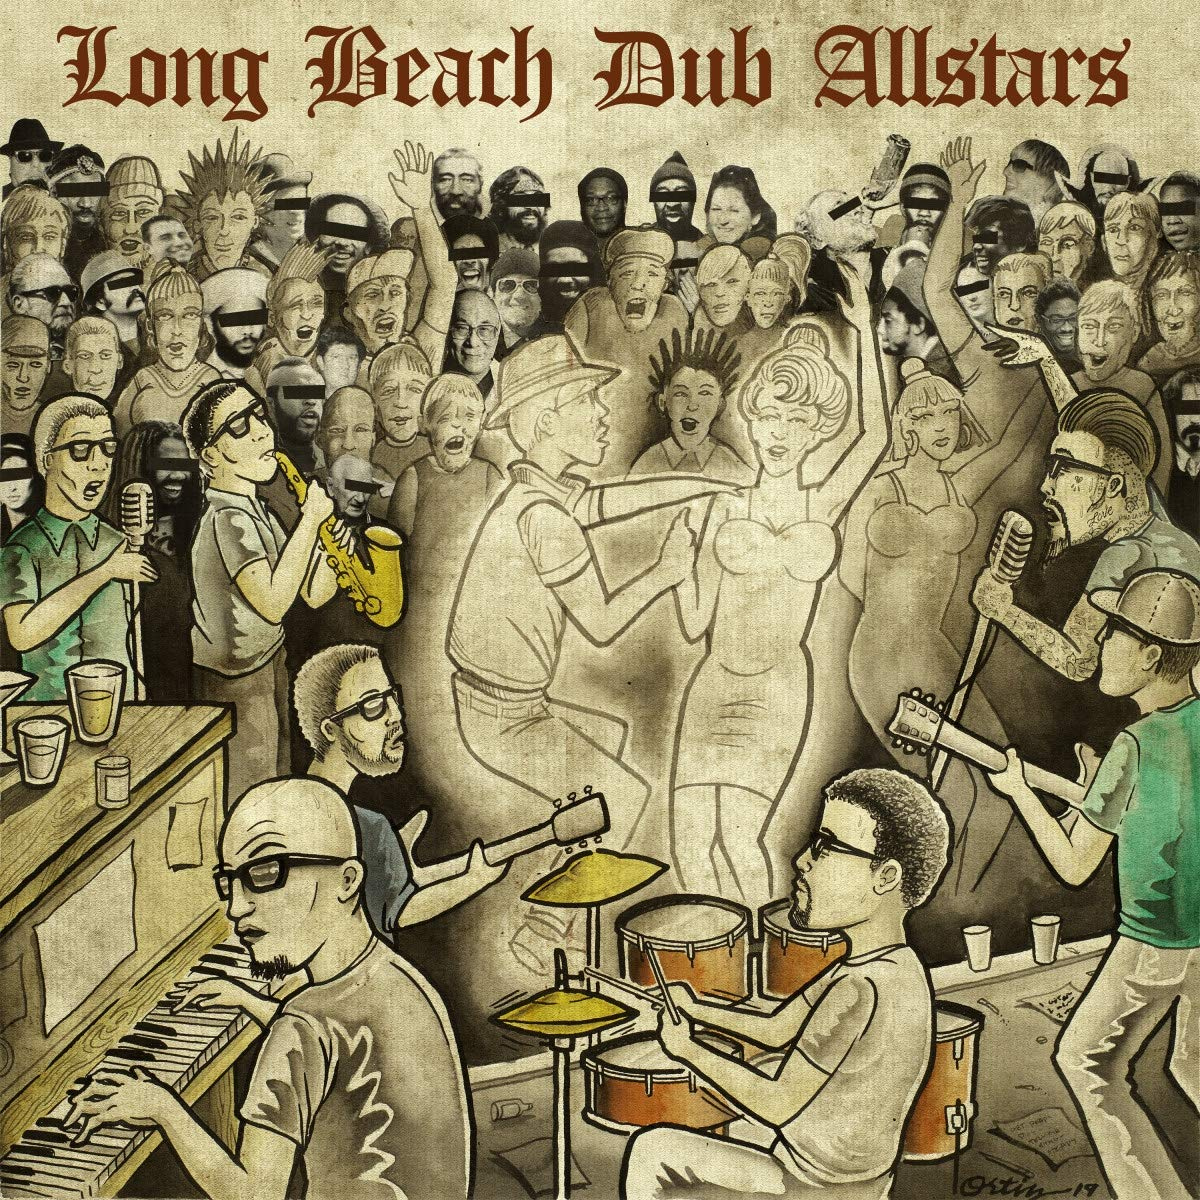 Long Beach Dub Allstars - Long Beach Dub Allstars